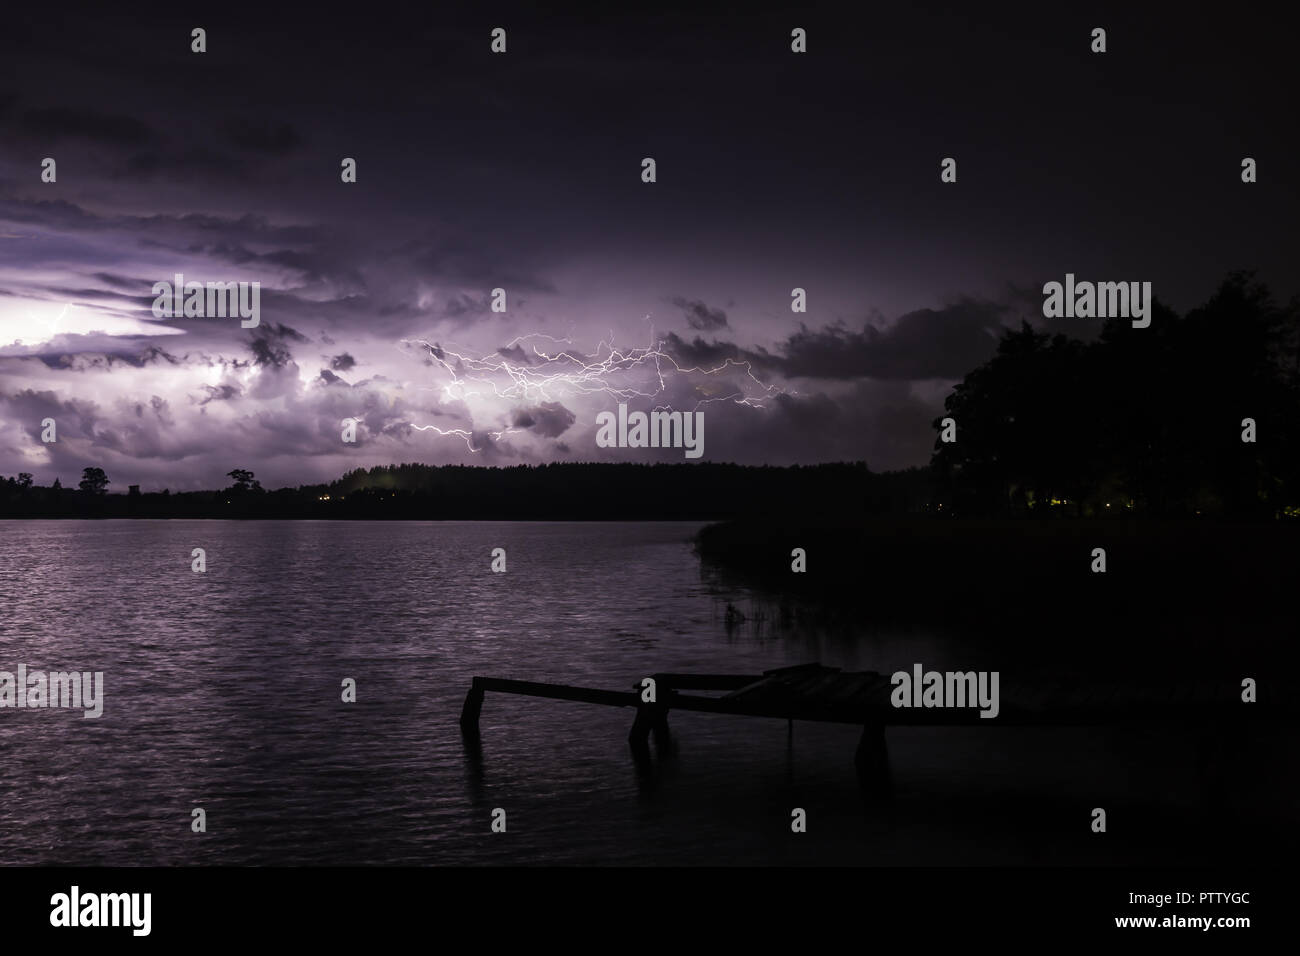 Thunderstorm over a quiet lake Stock Photo